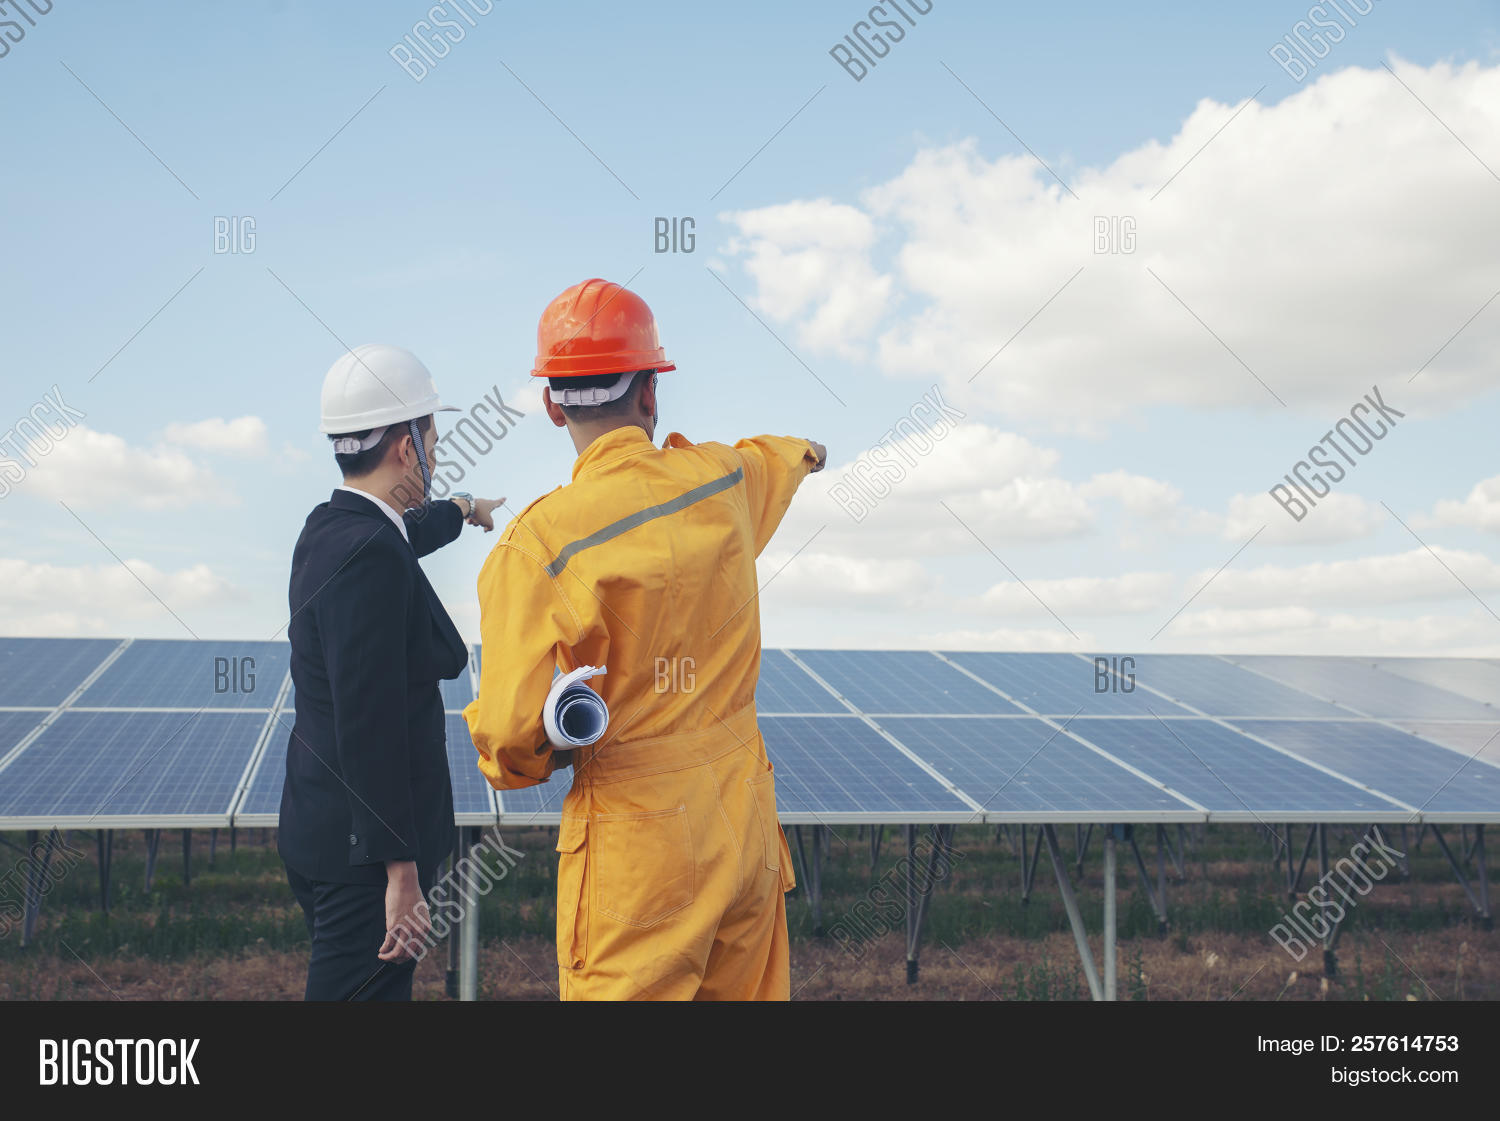 background,blueprint,building,business,clean,concept,construction,contractor,electrical,employee,energy,engineer,environment,equipment,foreman,green,hard,hardhat,hat,health,helmet,holding,industrial,industry,job,labor,looking,male,manager,men,occupation,officer,orange,panel,people,person,plant,power,professional,project,safety,site,solar,suit,sustainable,technician,wearing,work,worker